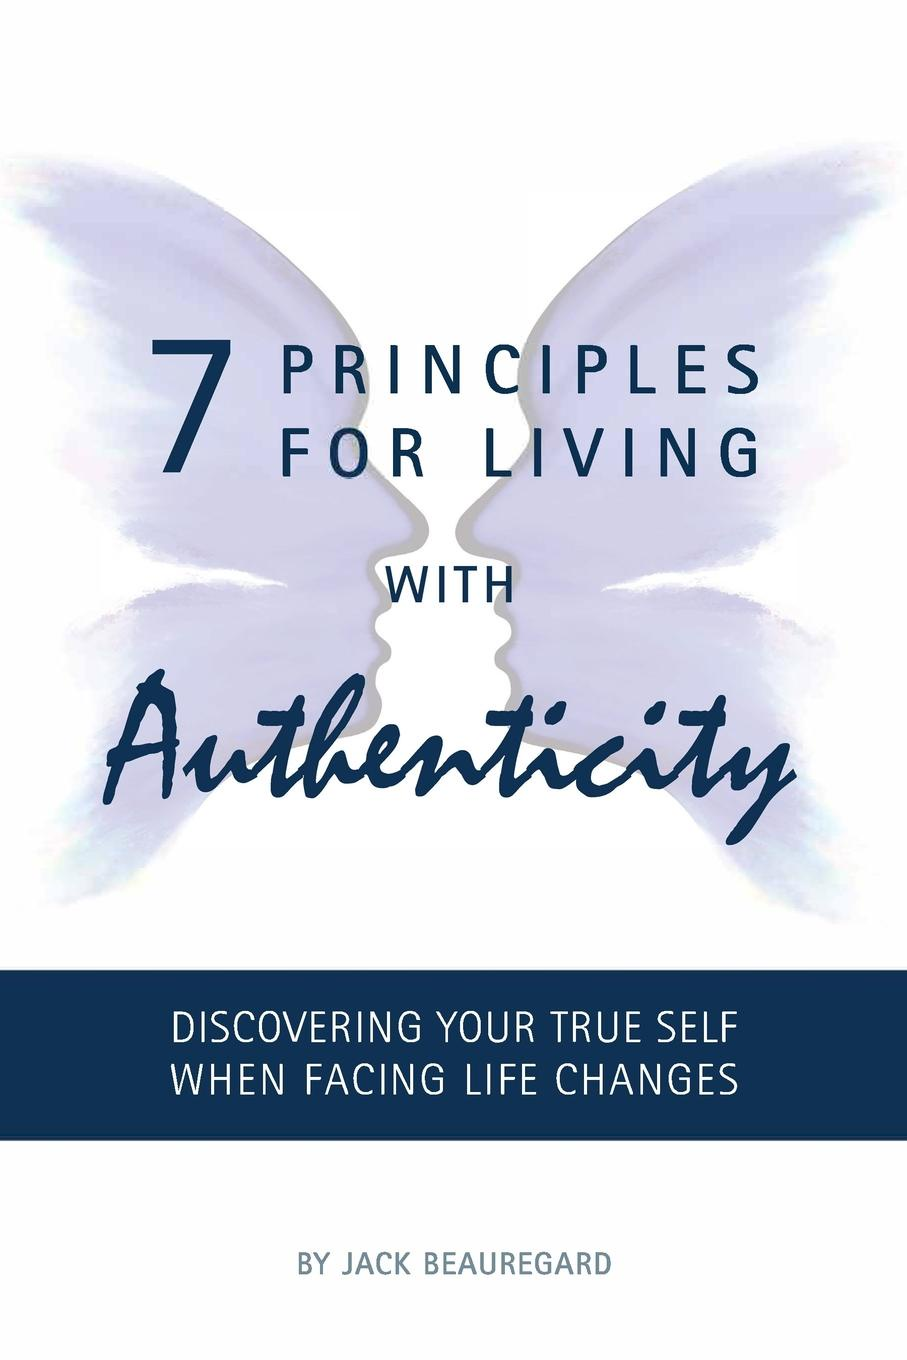 Jack Beauregard 7 PRINCIPLES FOR LIVING with AUTHENTICITY. Discovering Your True Self When Facing Life Changes